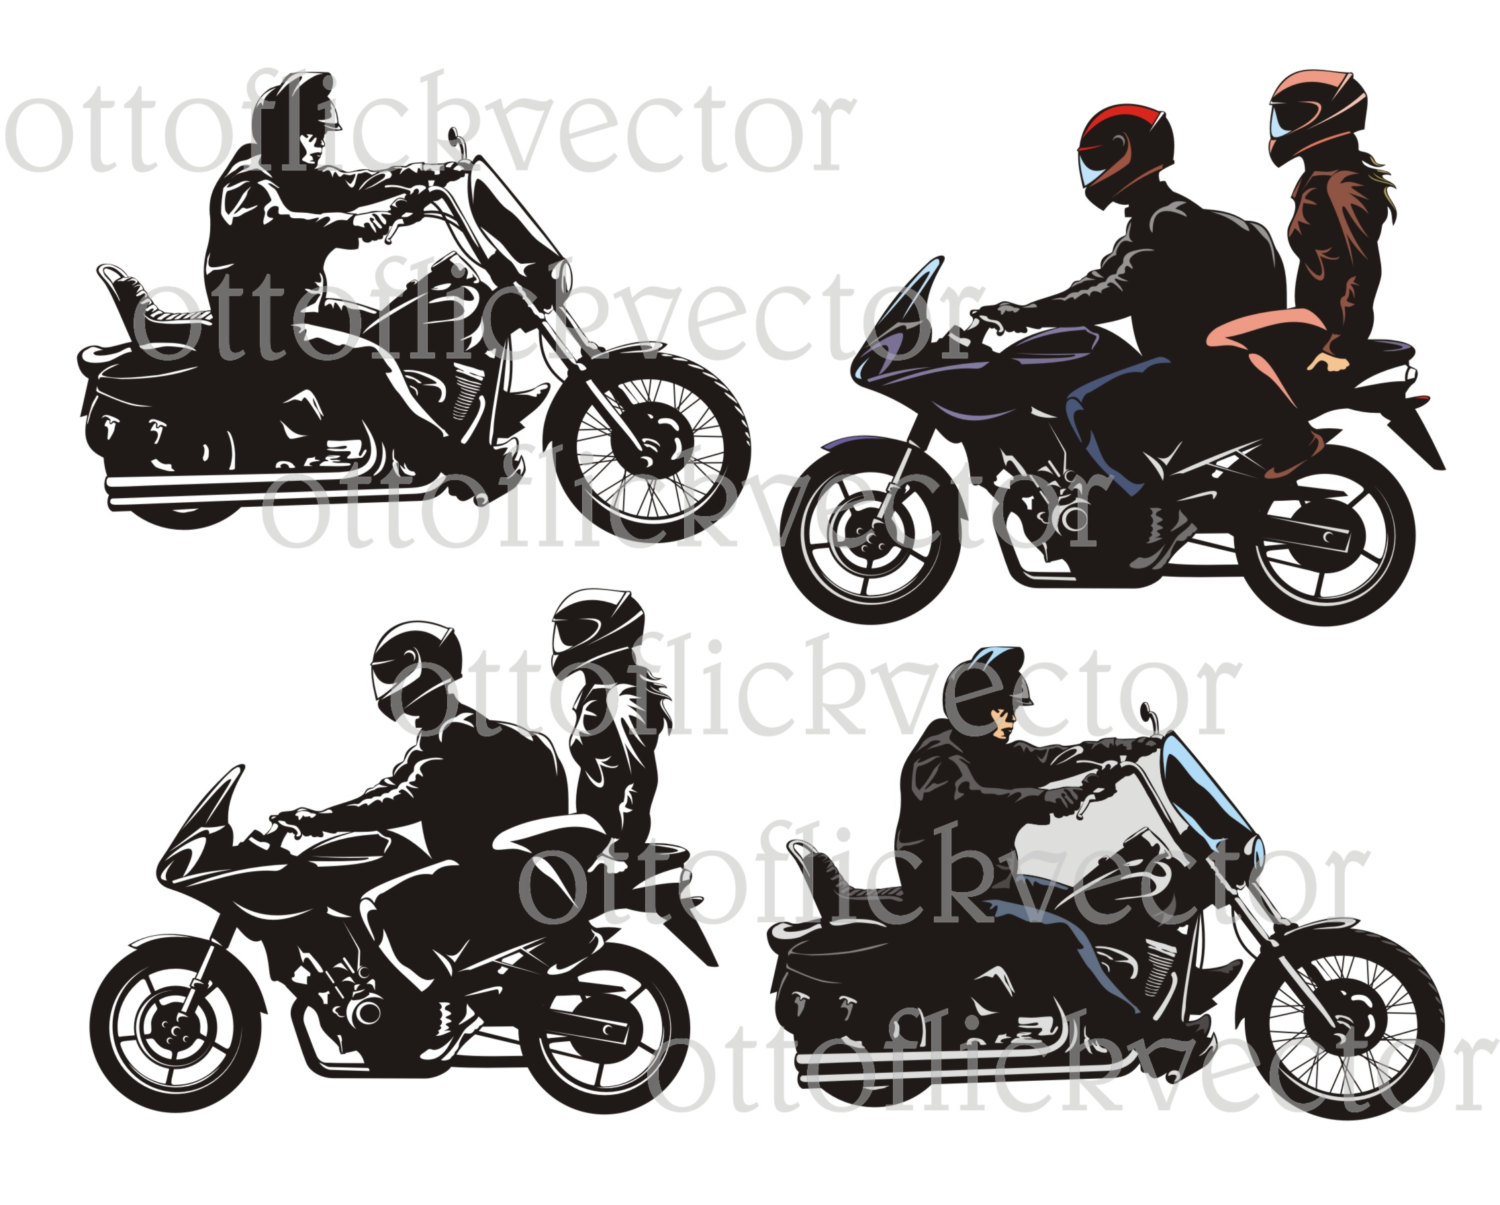 MOTORCYCLE BIKE RIDER vector clipart eps, ai, cdr, png, jpg, b&w.